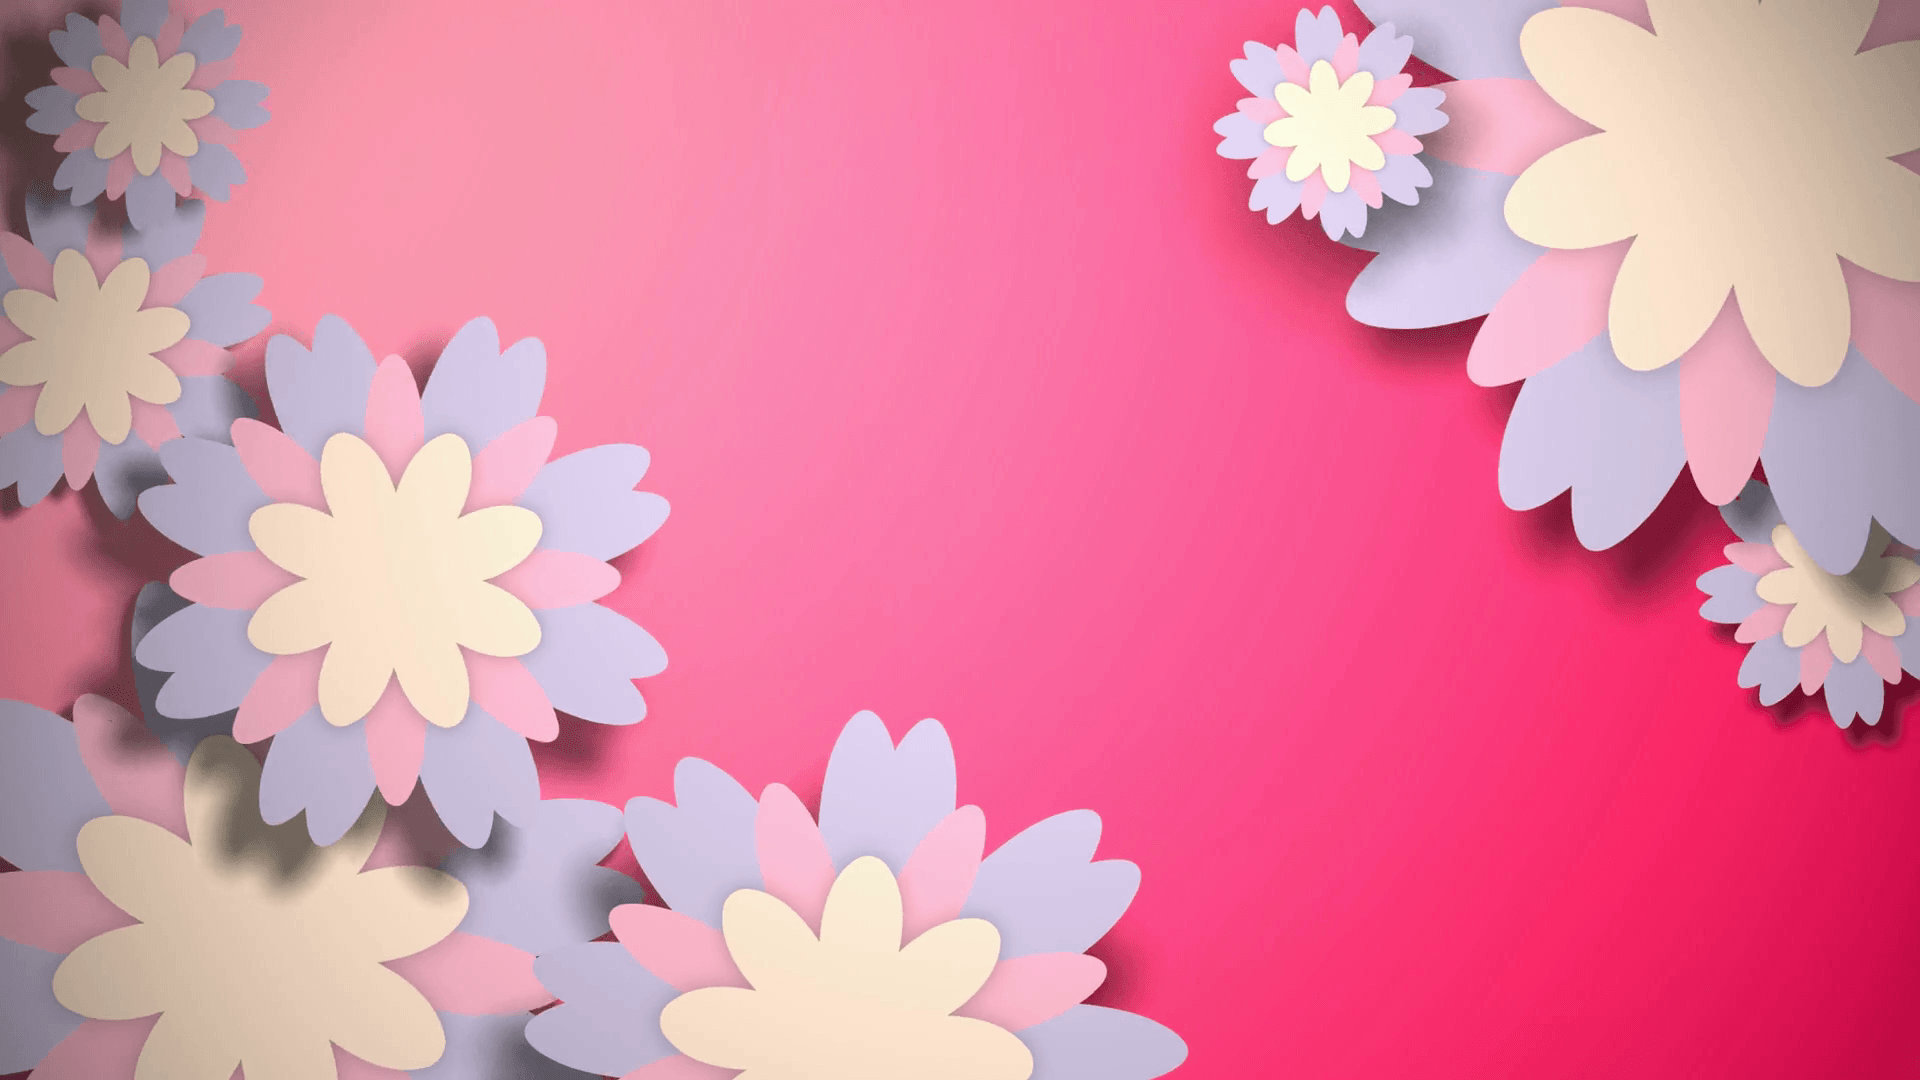 Animated Wallpaper With Pastel Color Flowers On Pink Pastel Colors Background Flowers 1920x1080 Download Hd Wallpaper Wallpapertip